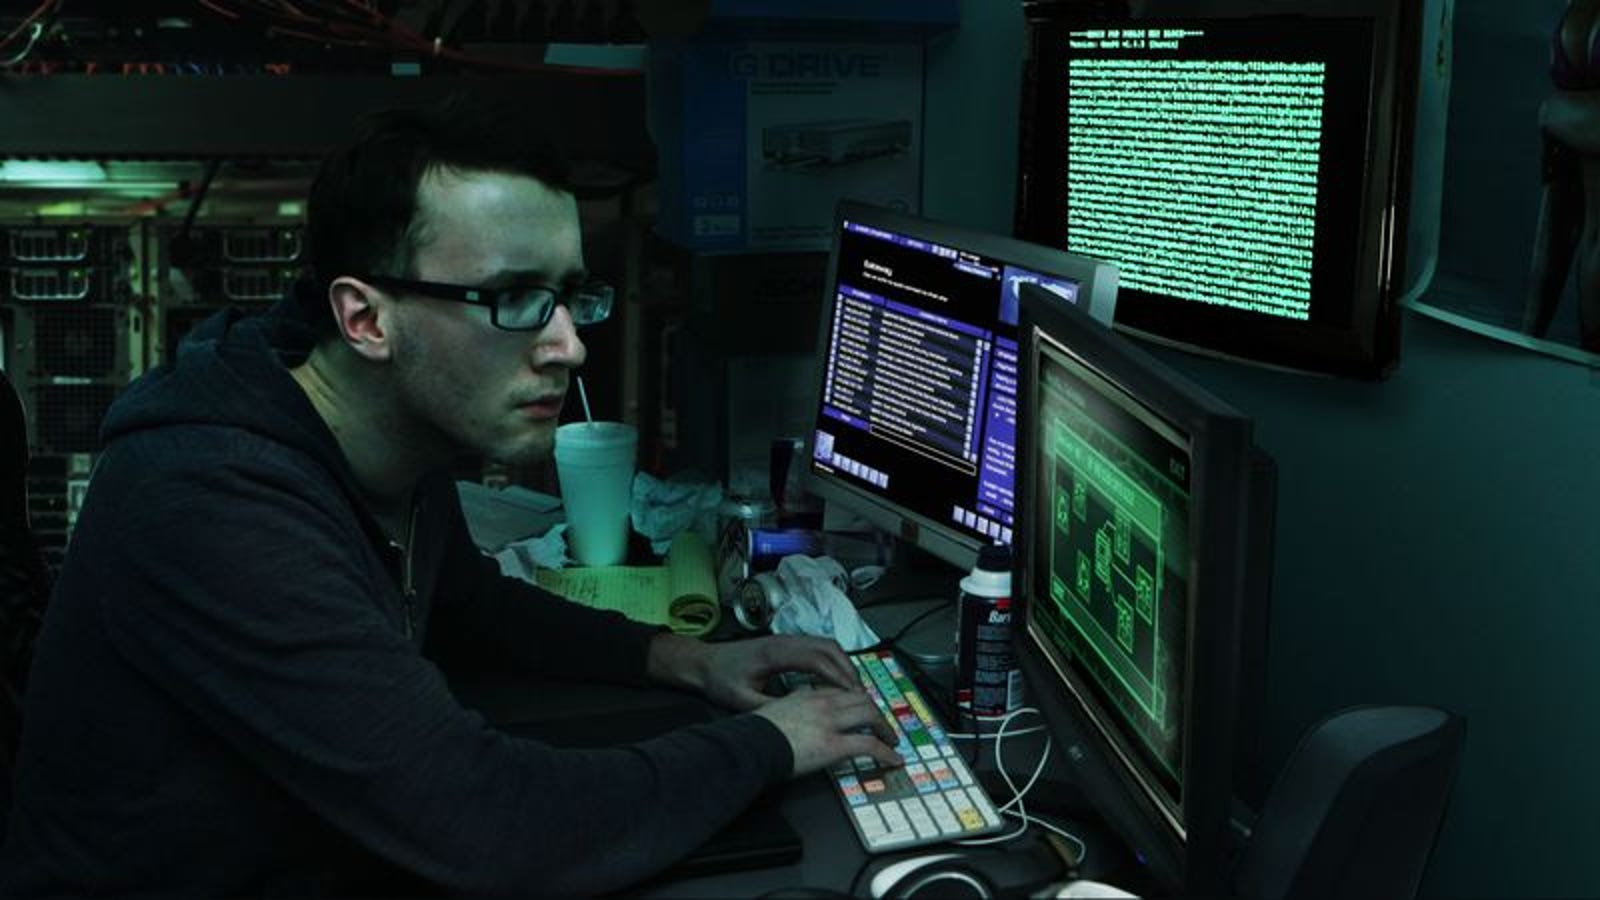 Fast-Talking Computer Hacker Just Has To Break Through